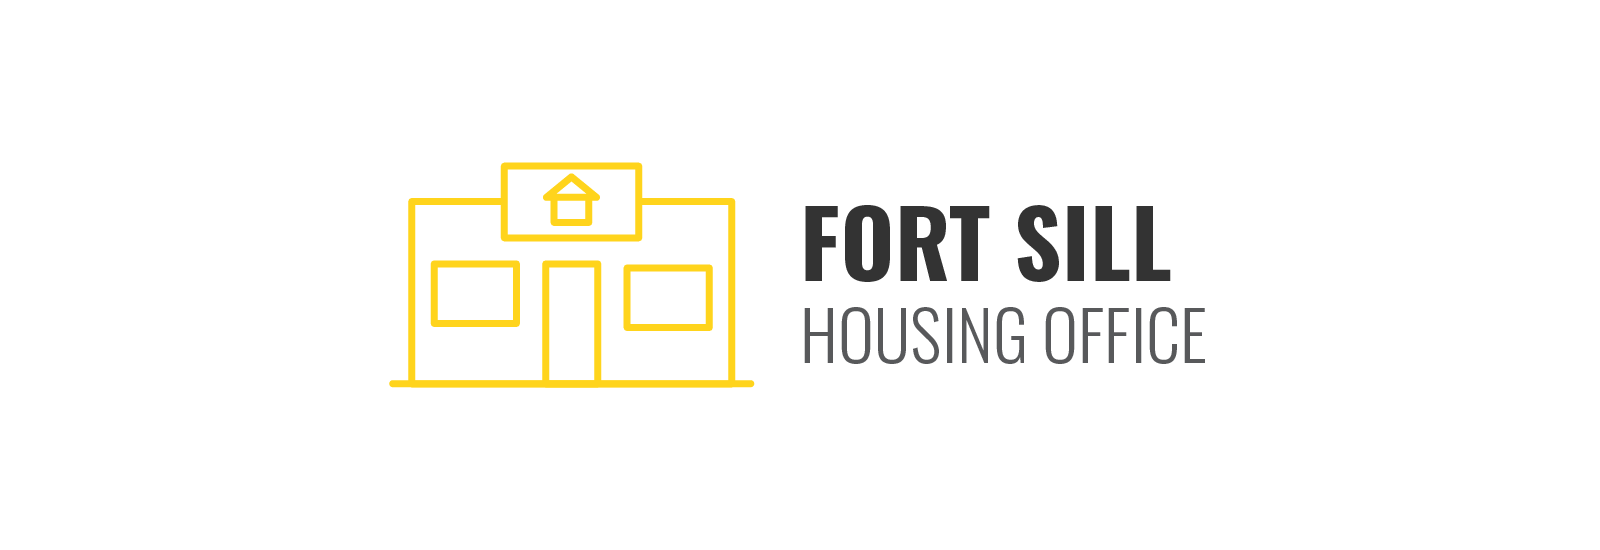 Fort Sill Housing Office